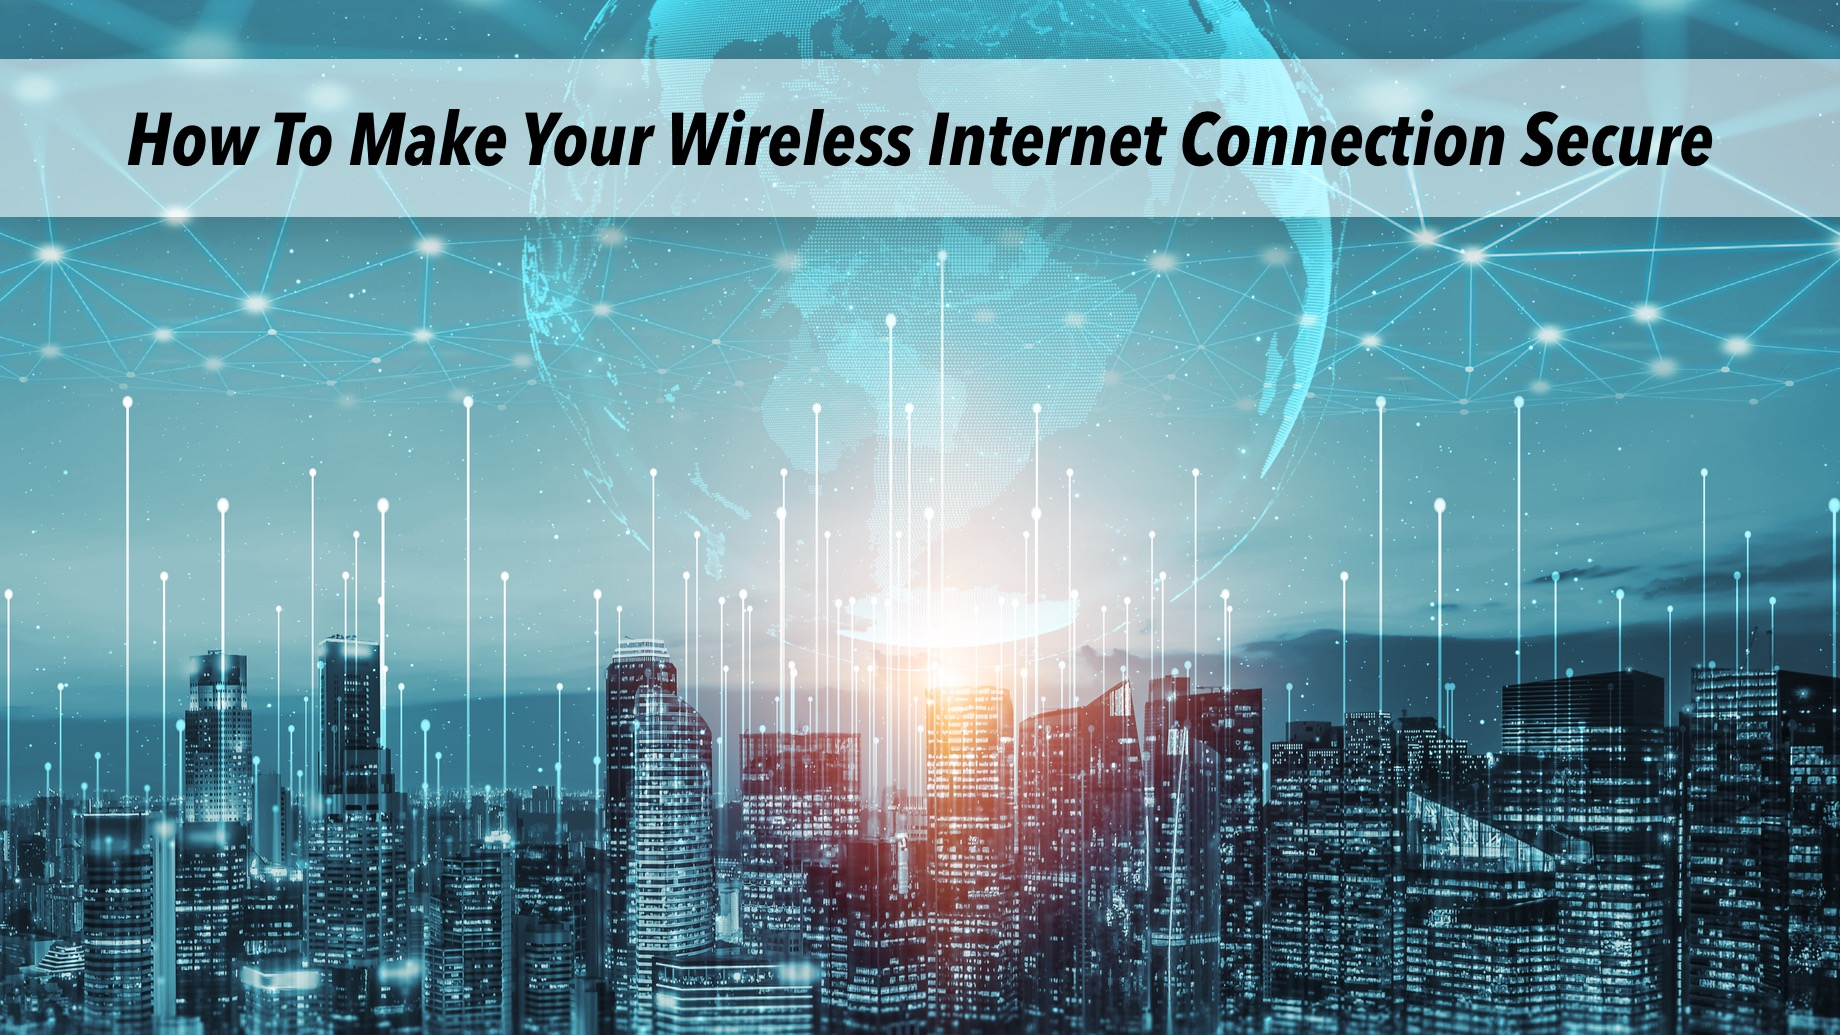 How To Make Your Wireless Internet Connection Secure